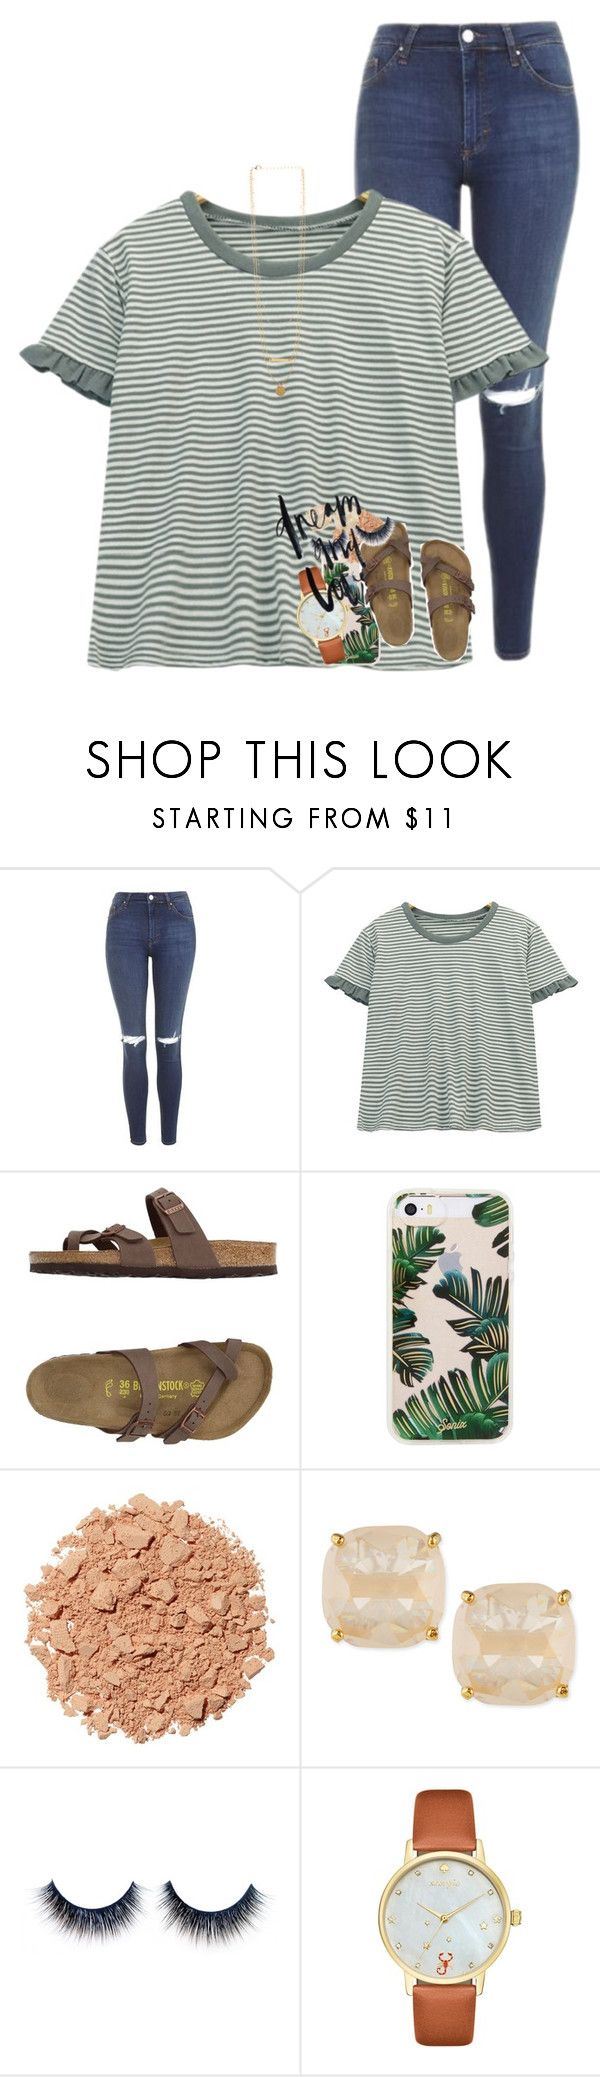 """can't keep you off my mind"" by ellaswiftie13 on Polyvore featuring Topshop, Chicnova Fashion, Birkenstock, Sonix, Illamasqua and Kate Spade"